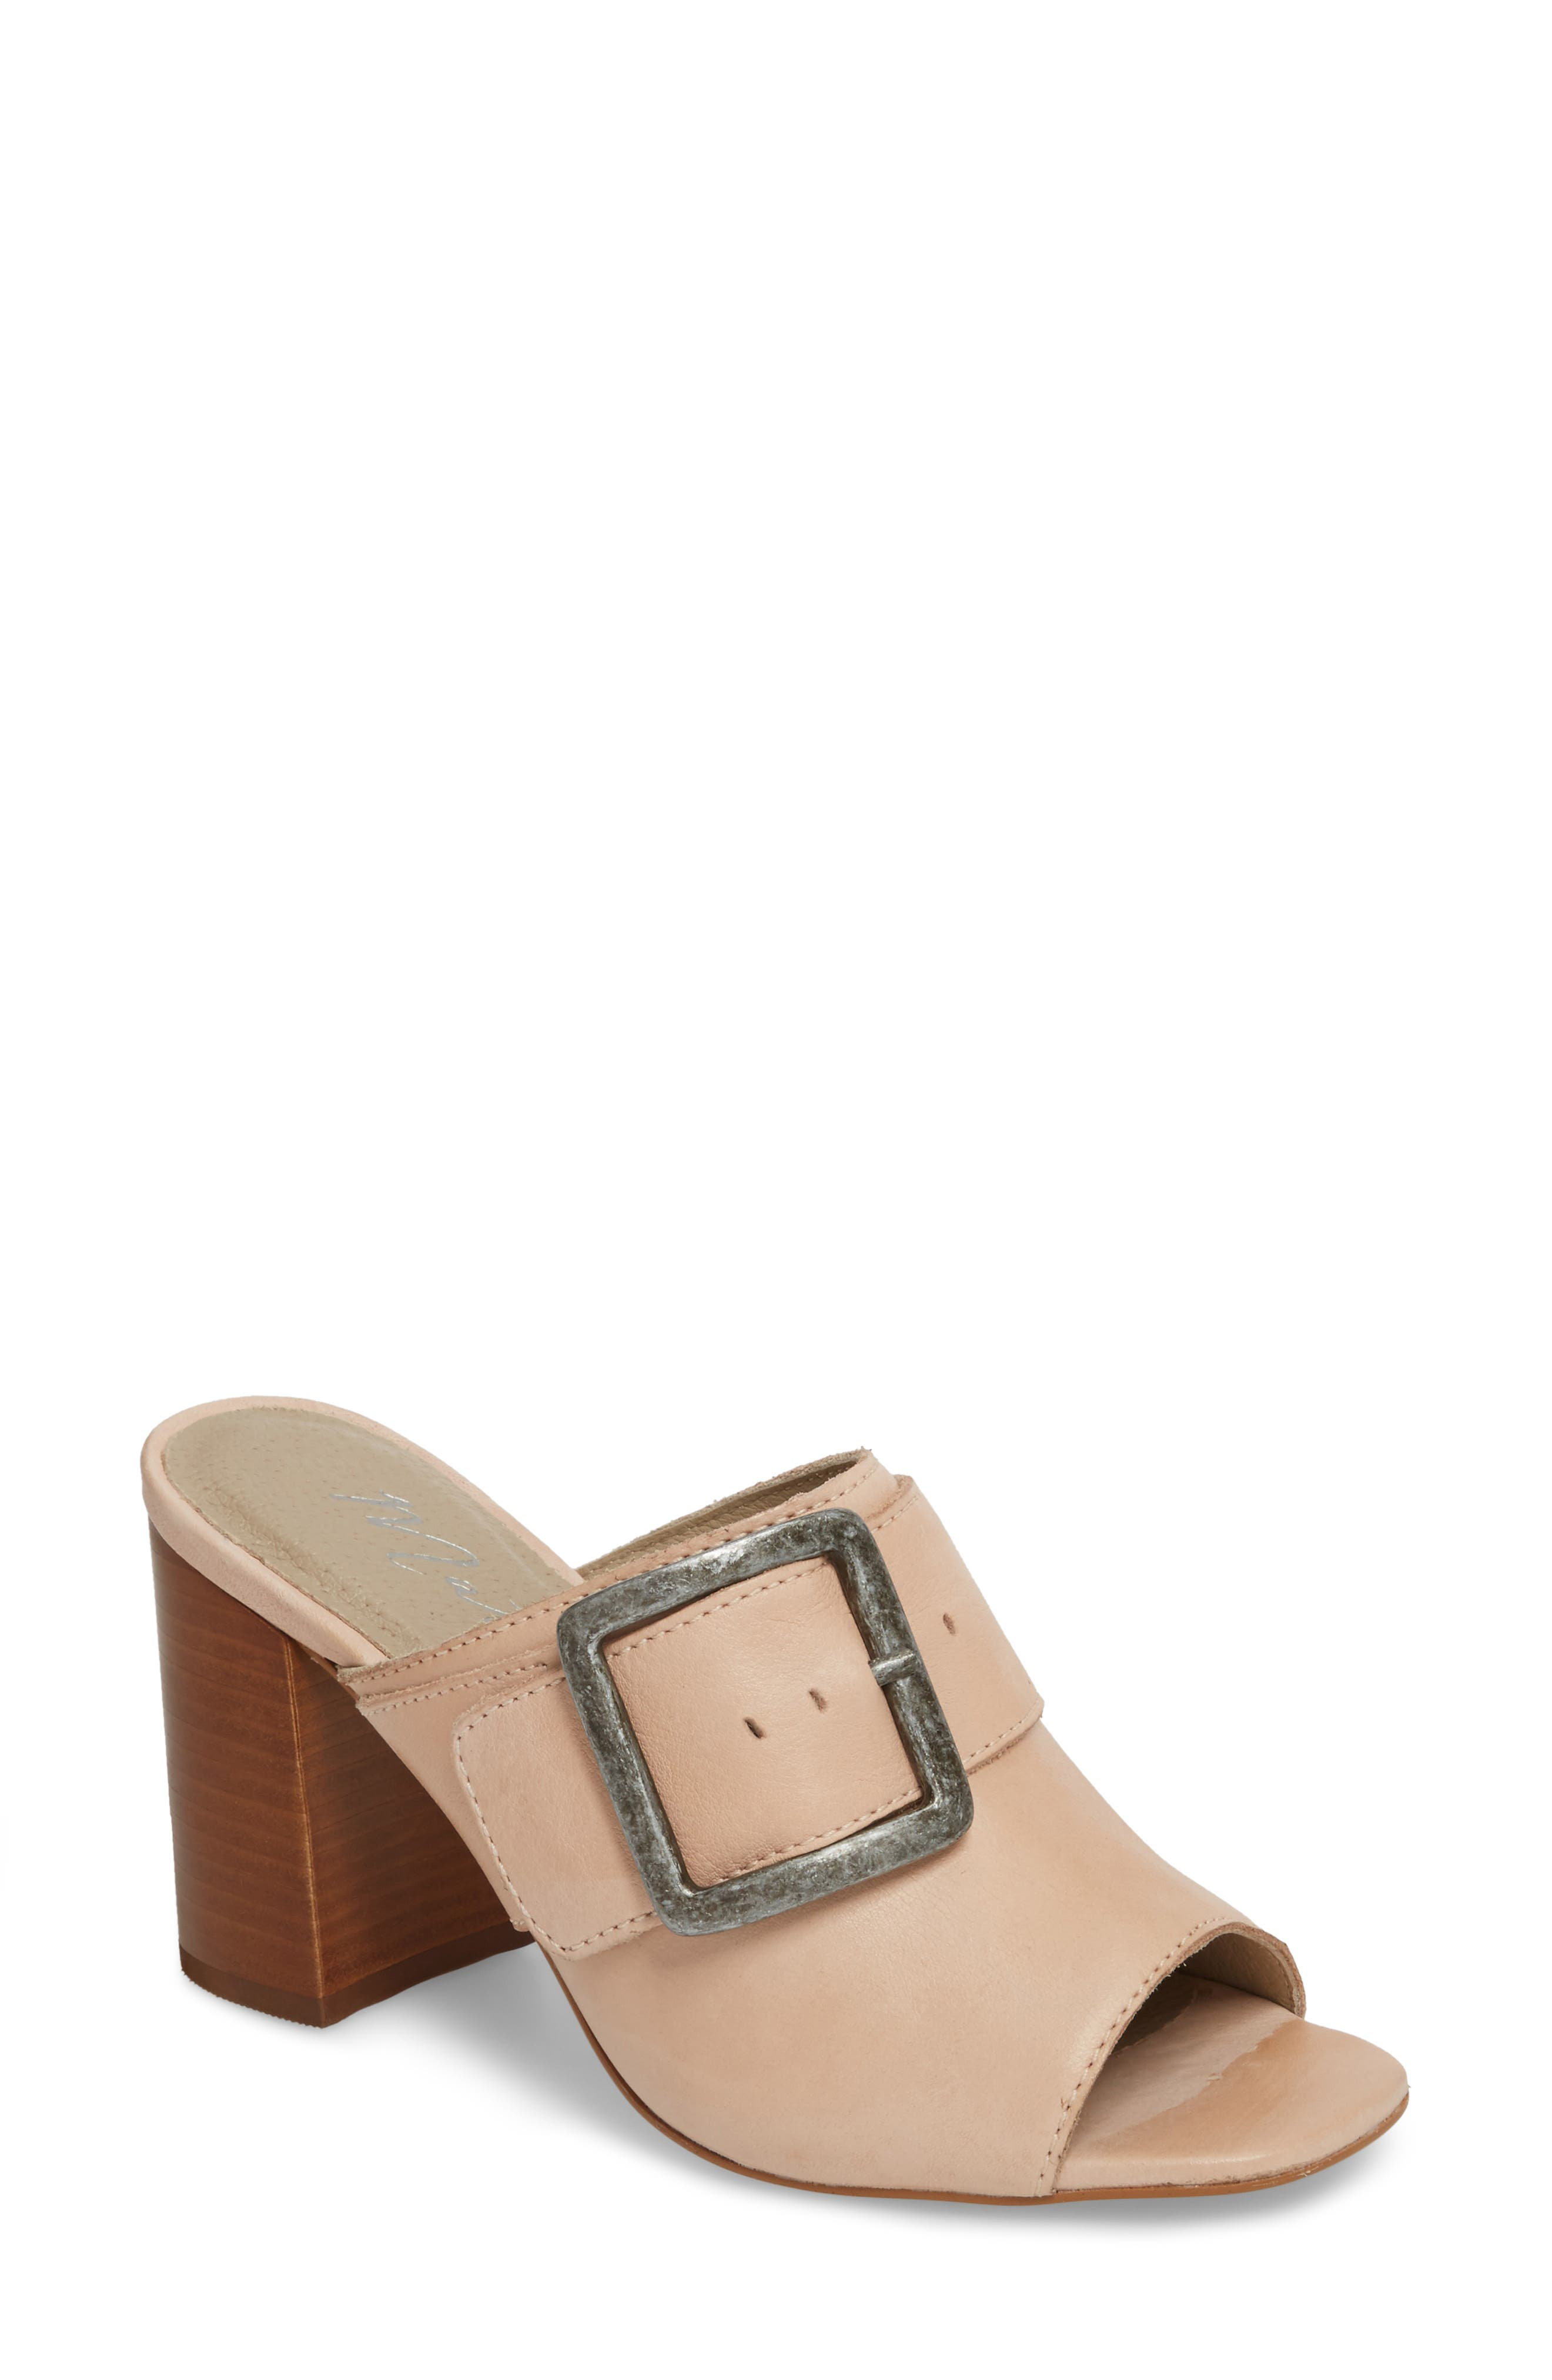 Beatrice Sandal,                             Main thumbnail 1, color,                             Nude Leather